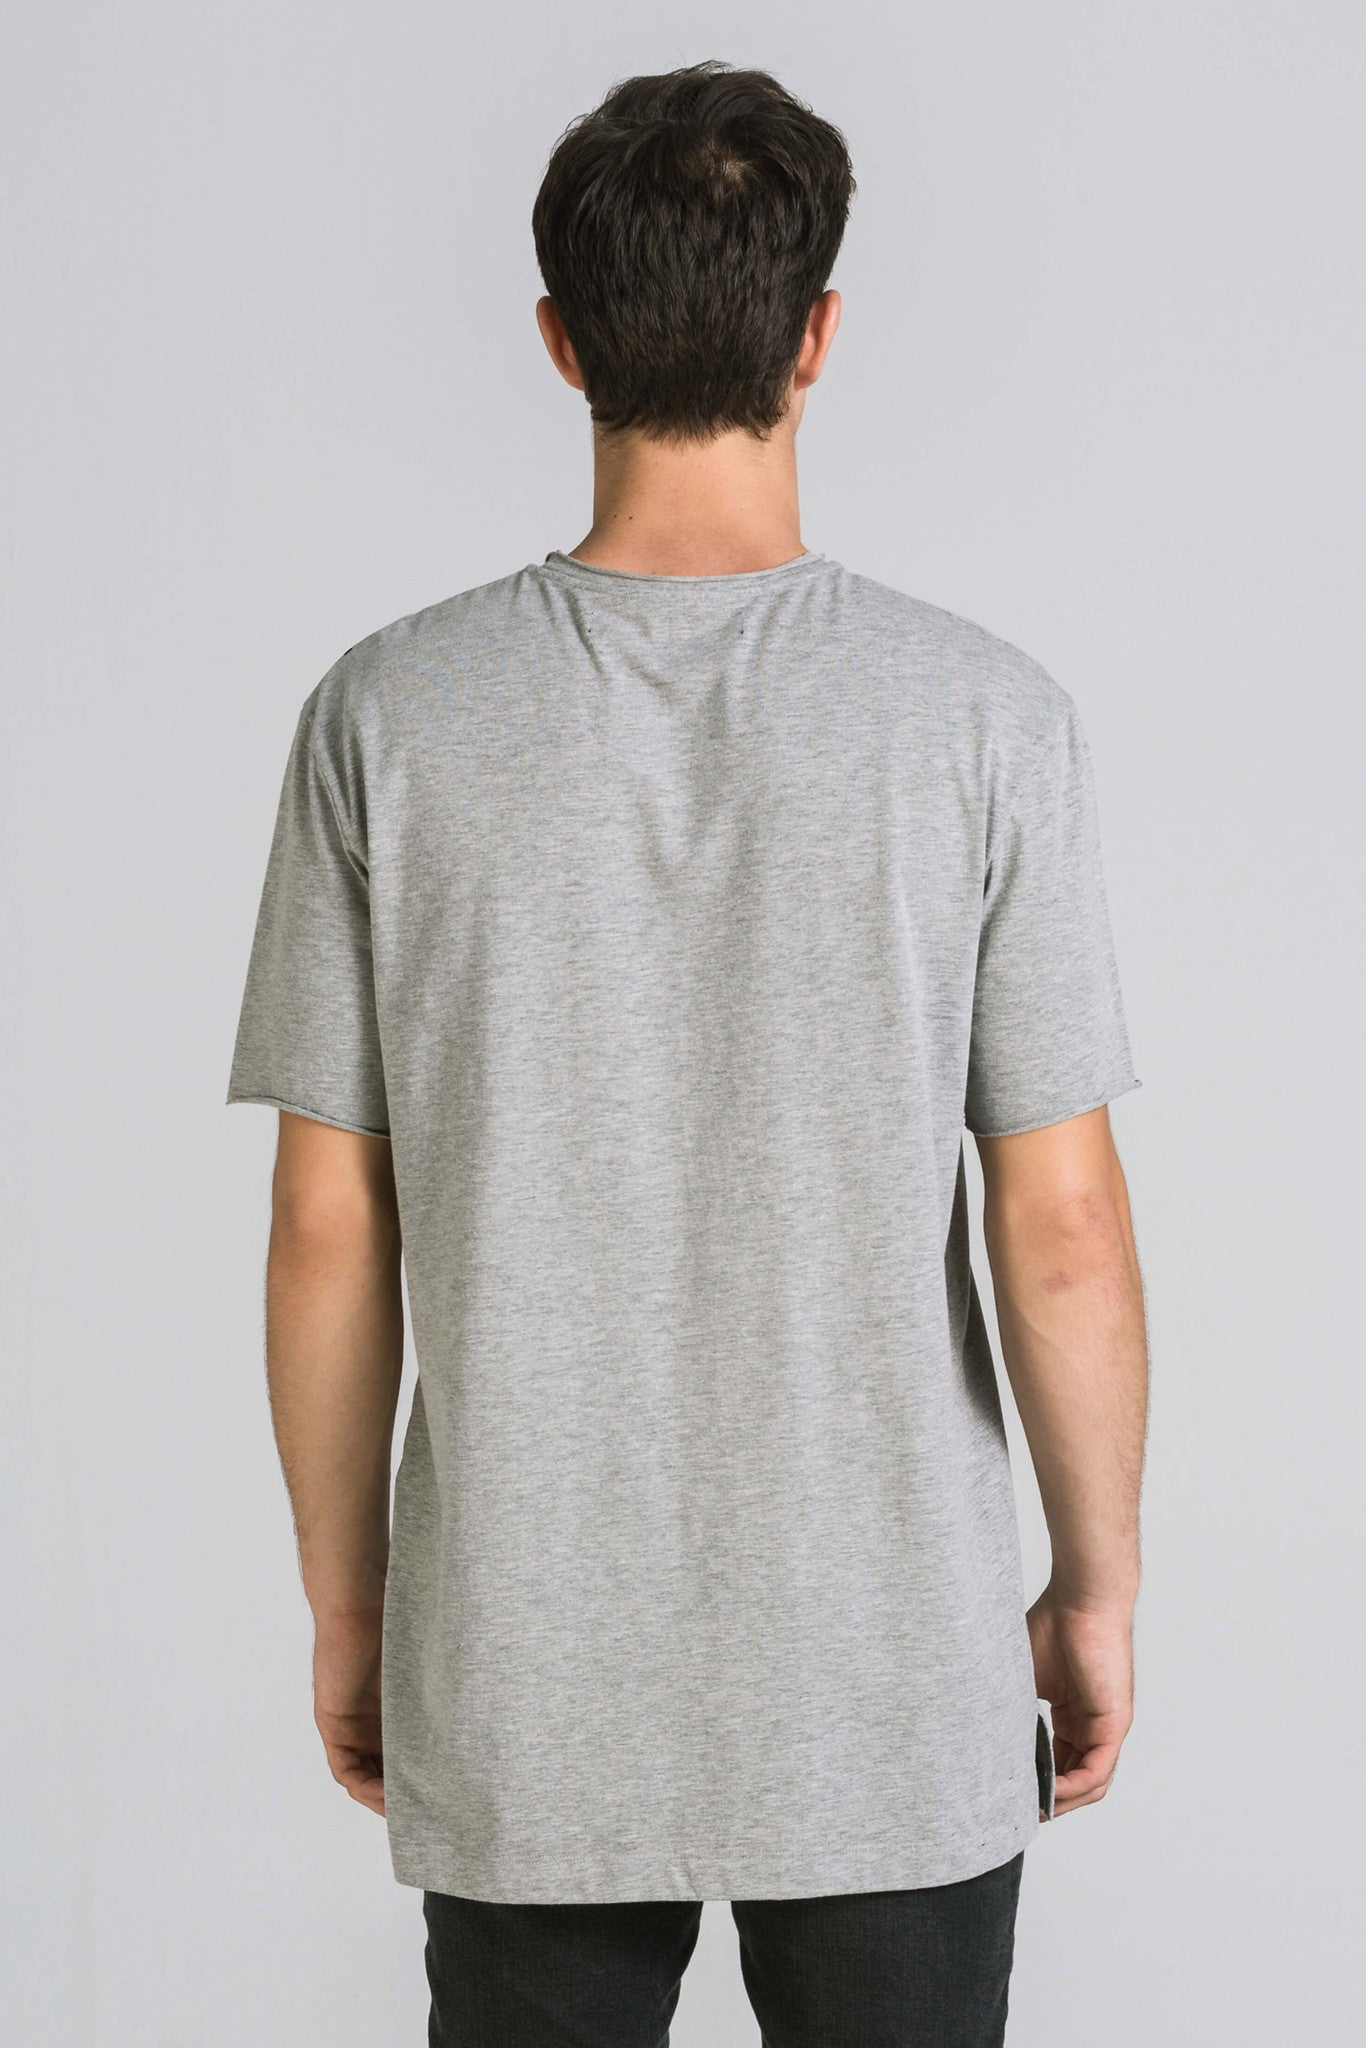 ALWAYS GREY TEE